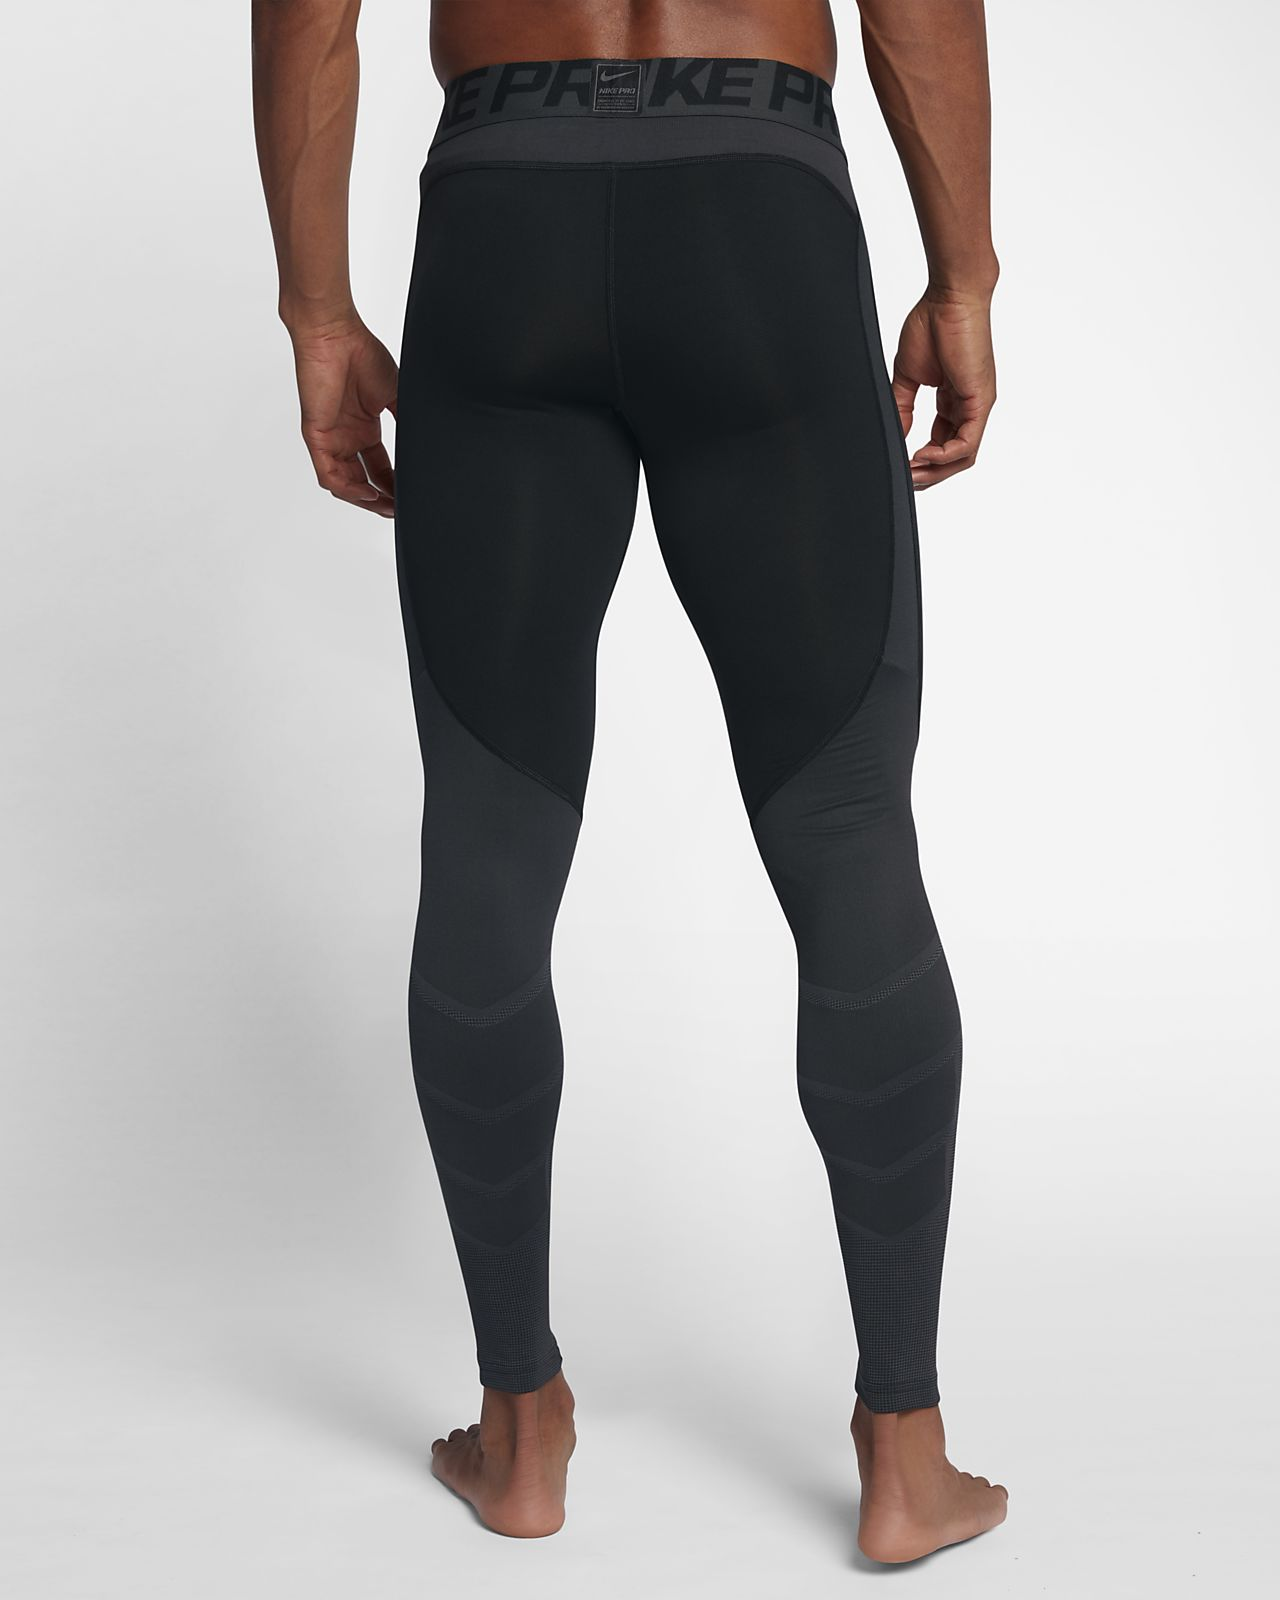 b3dcdbb5fa0edf Nike Pro HyperWarm Men's Tights. Nike.com SG